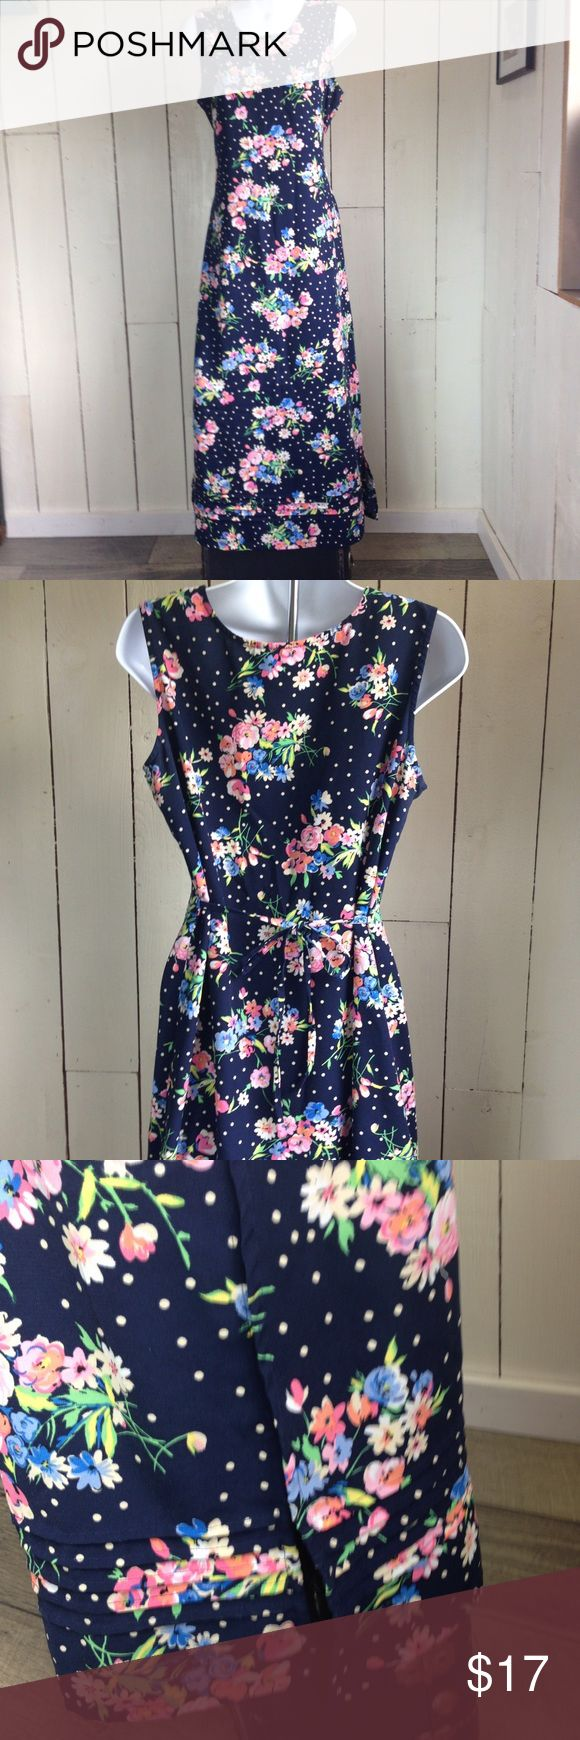 ☀️SALE PRICE Polka Dot Sag Harbor Petites Dress Darling tea length dress with side split and pleated hem. Gently Worn. Easy Care - Machine Wash, Hang Dry. The sweater is not included but listed separately. I love the way the sweater compliments the dress and often wore them together. Please let me know if I can answer any questions for you. Sag Harbor Dresses Midi